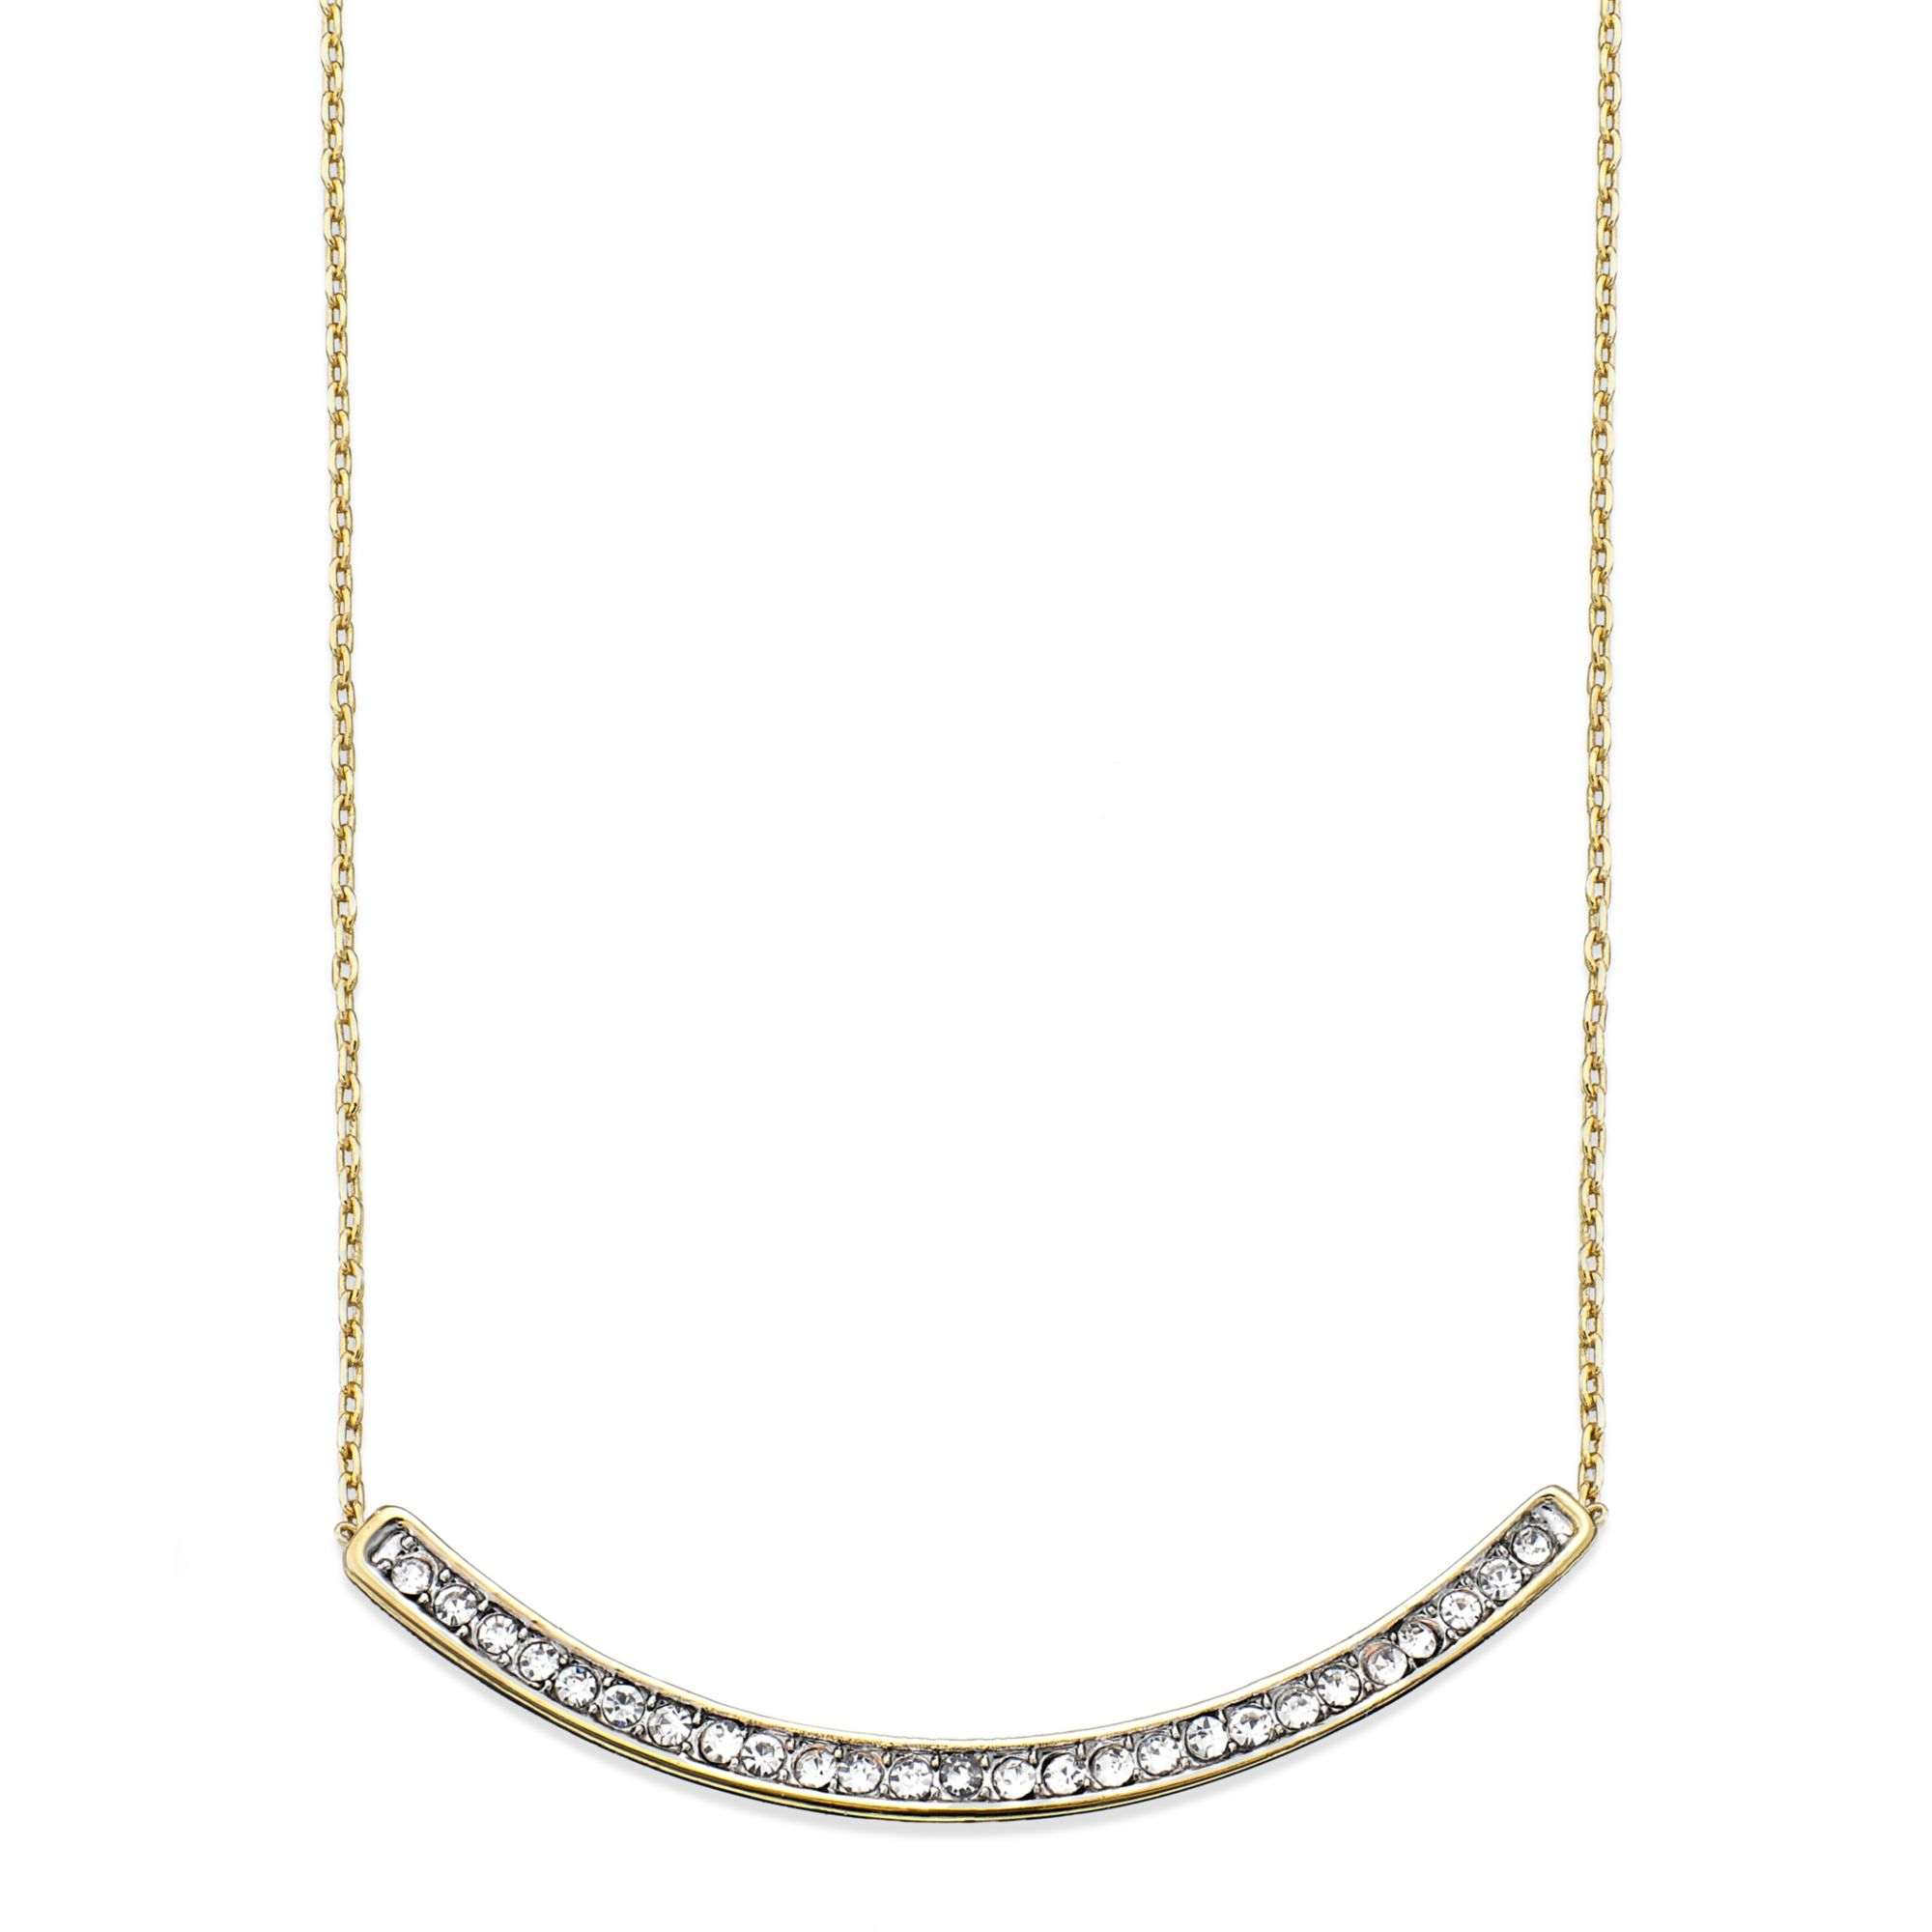 Juicy Couture Goldtone and Crystal Pave Curved Bar